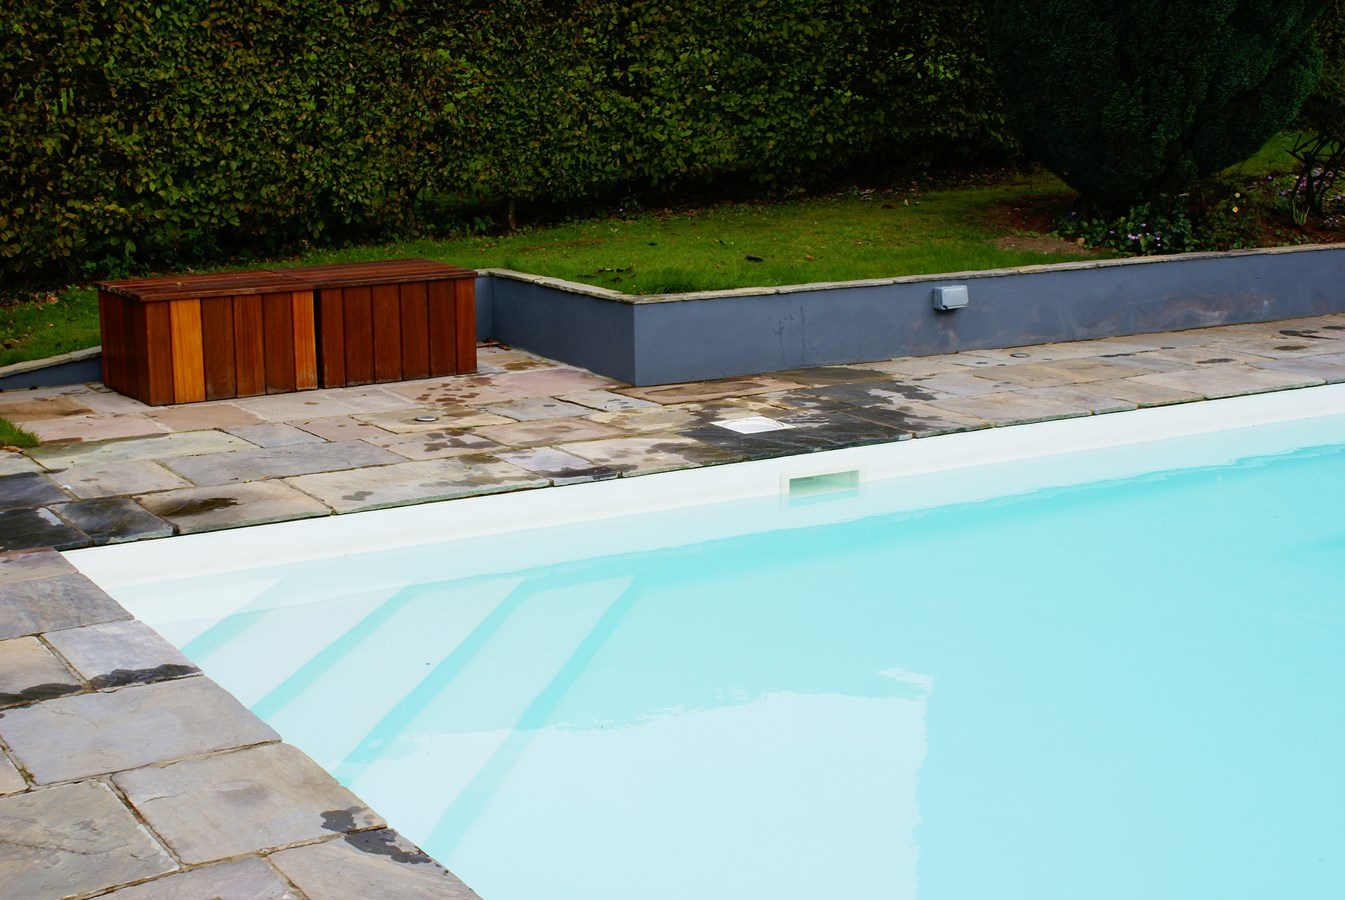 Liner pool refurbishment chepstow bos leisure - Witte pool liner ...